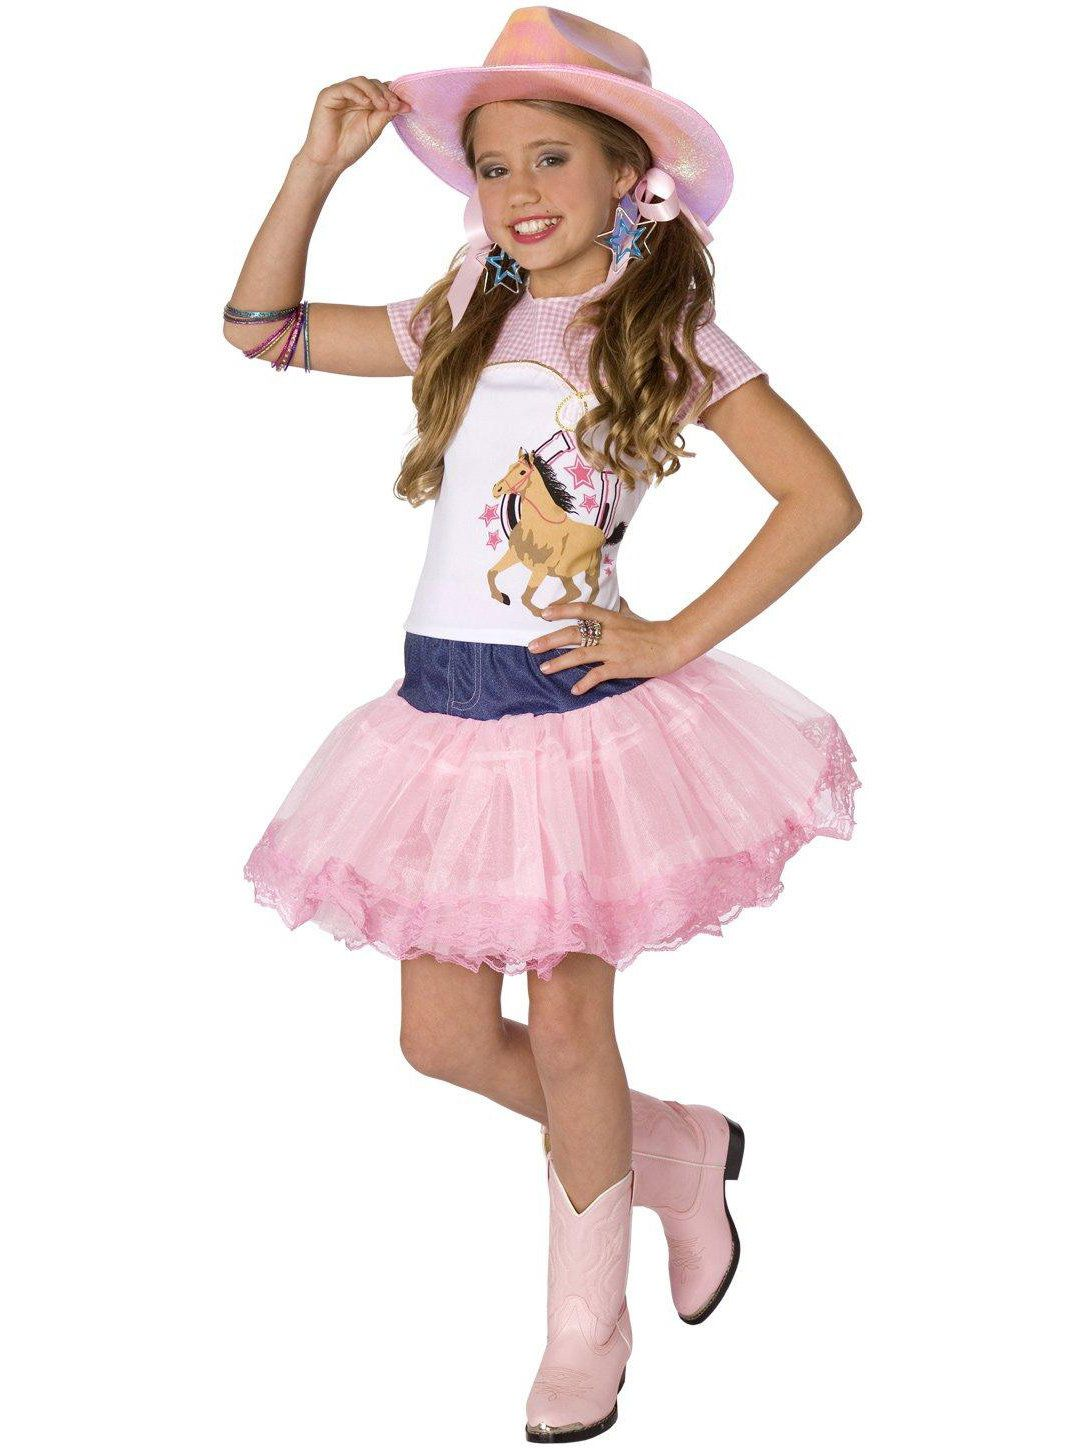 planet pop star cowgirl costume for children